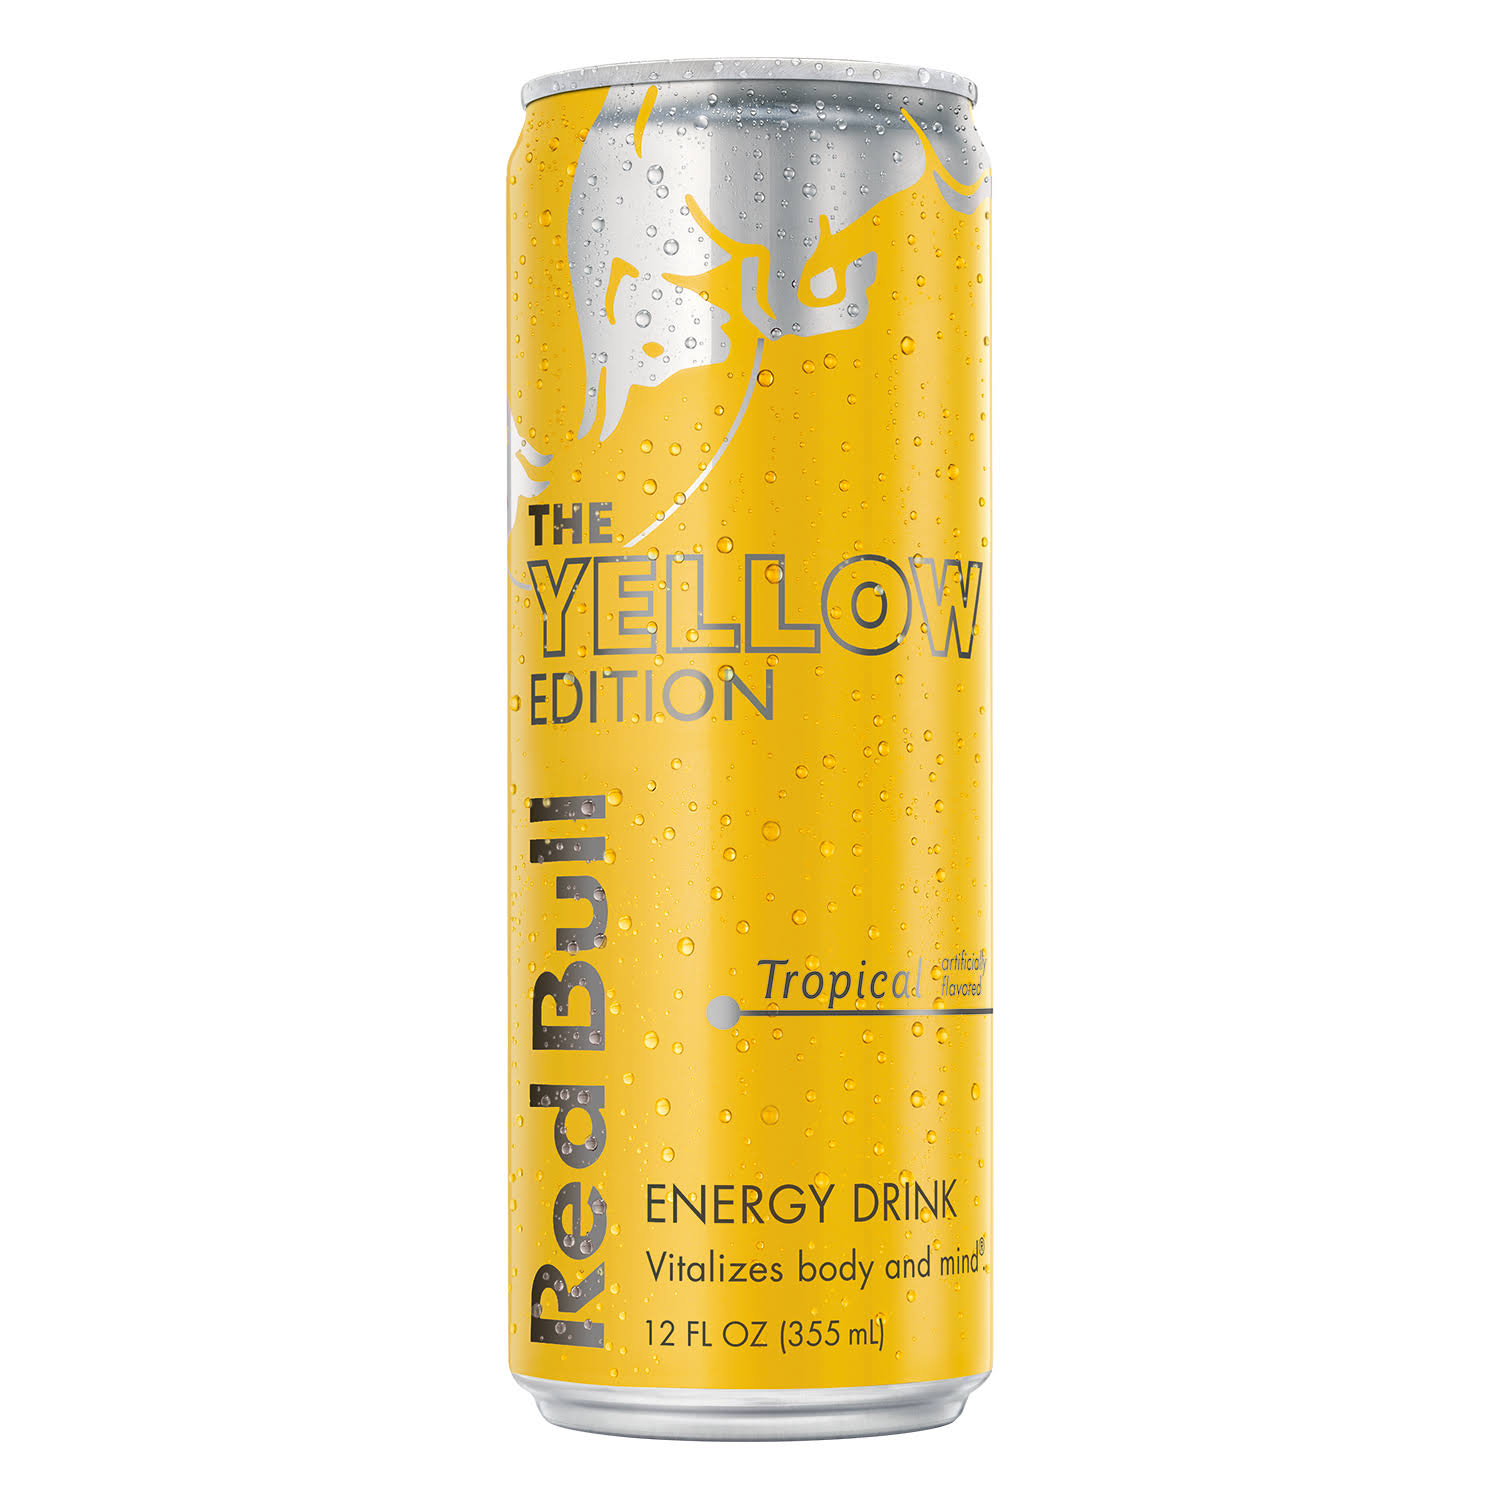 Red Bull The Yellow Edition Energy Drink - Tropical, 355ml